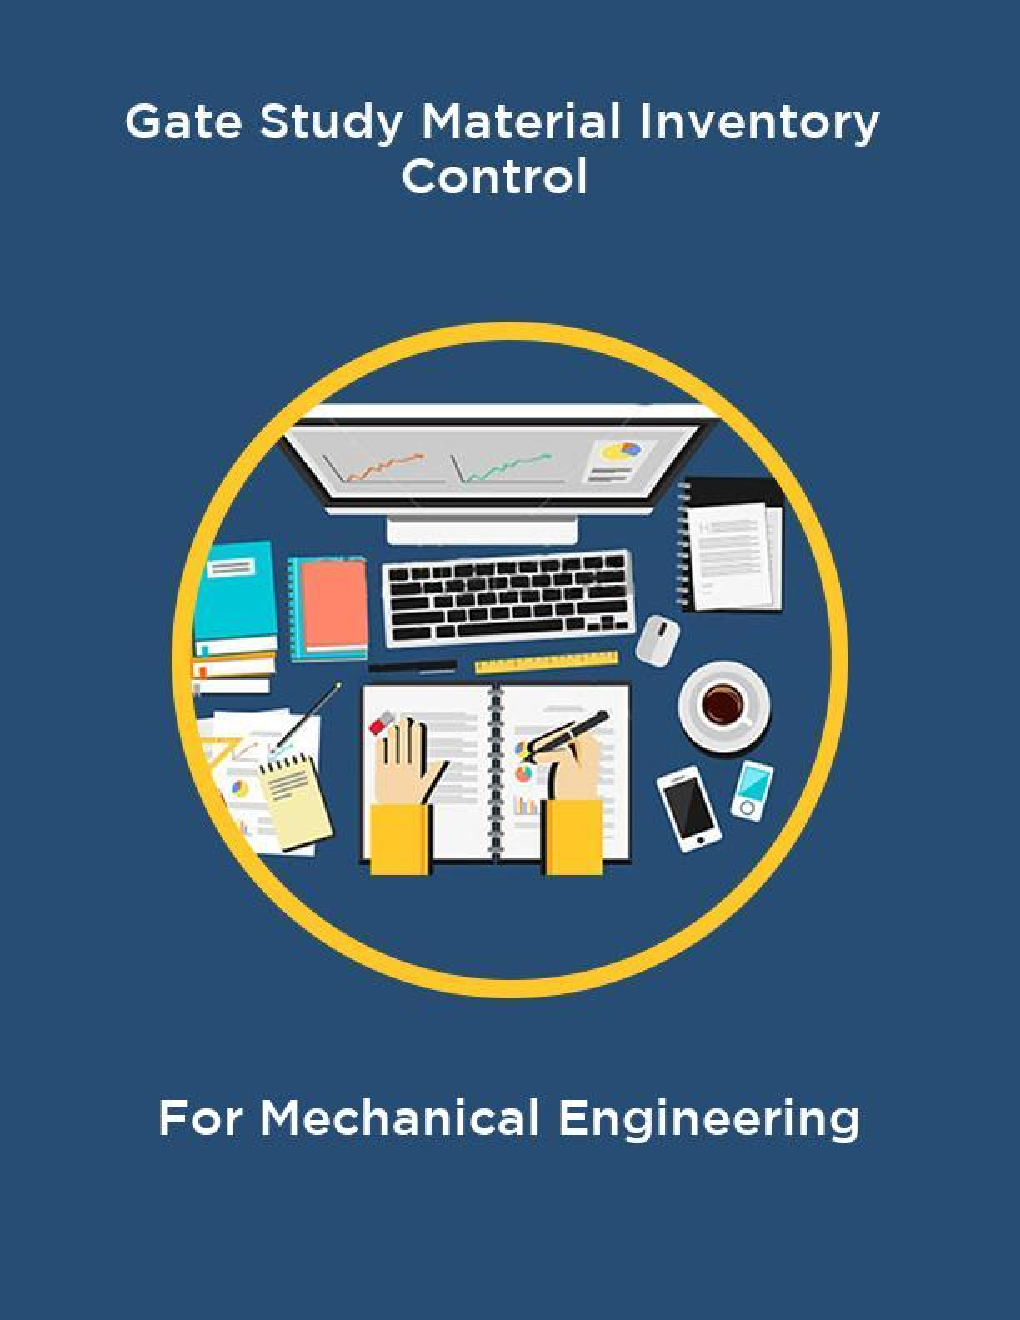 Gate Study Material Inventory Control For Mechanical Engineering - Page 1